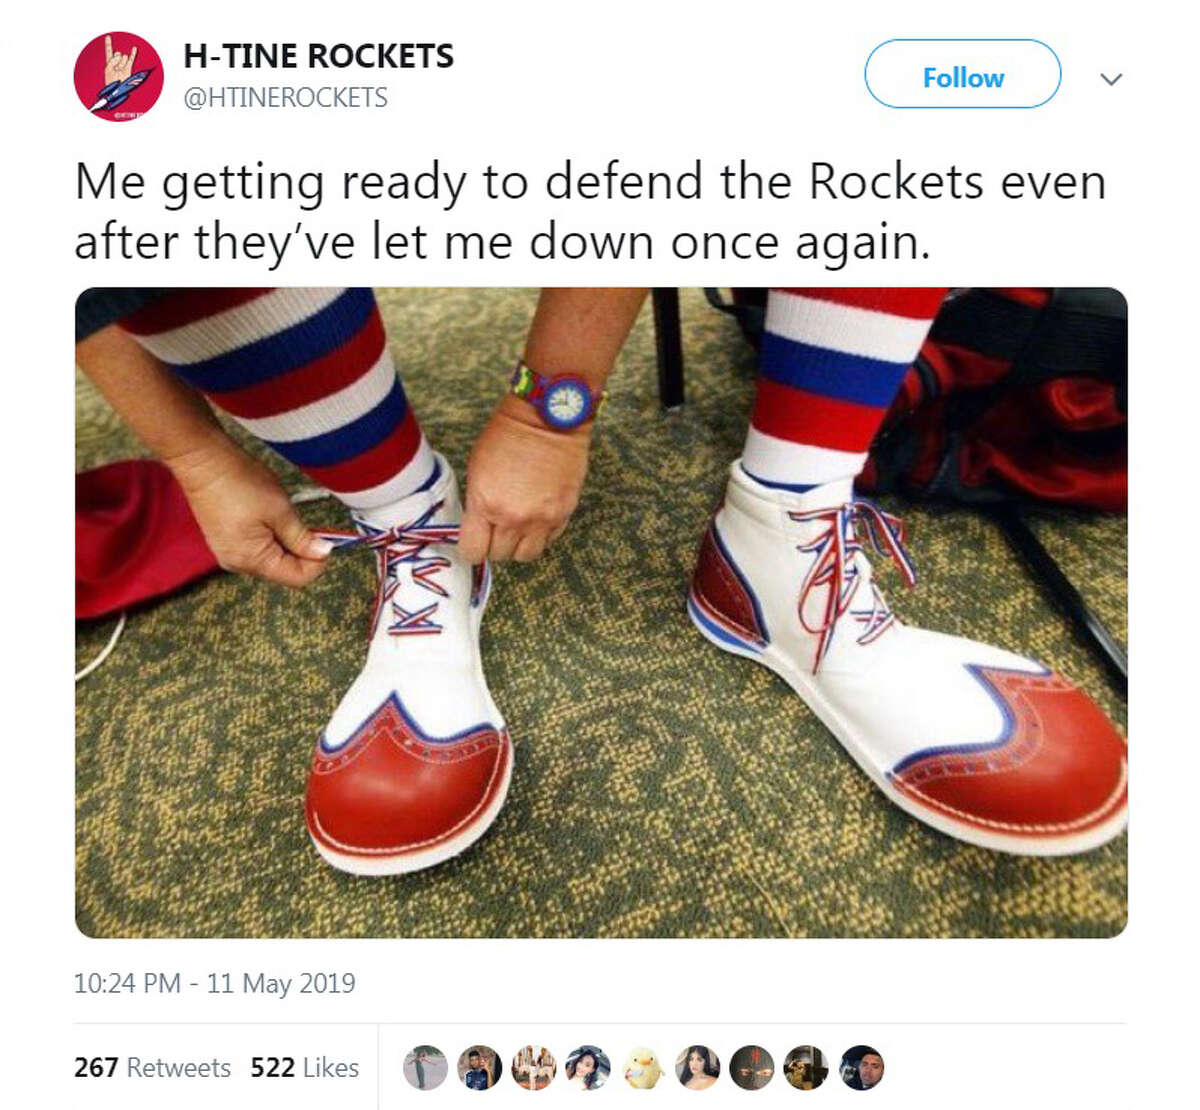 PHOTOS: Best memes and tweets after the Rockets' season came to an end this weekend The Internet was not a nice place to be for Rockets fans after their team was eliminated by the Golden State Warriors again this weekend. Browse through the photos above for a look at the best memes and Tweets after the Rockets season ended in heartbreaking fashion ...